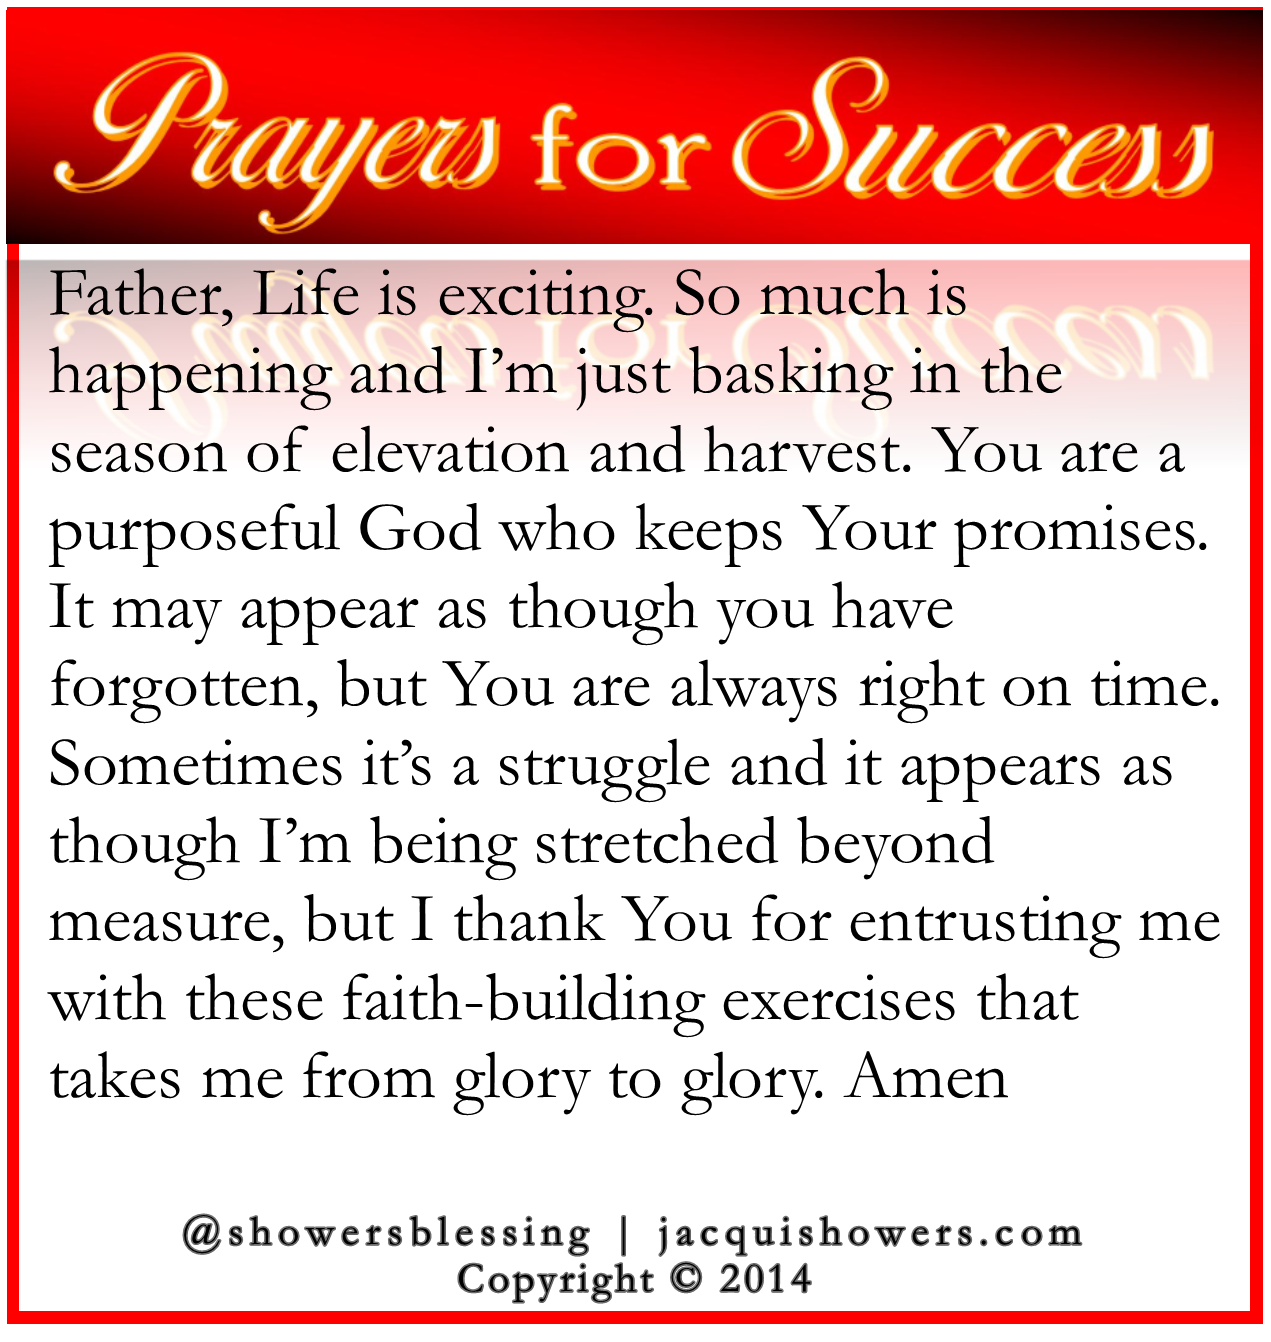 PRAYER FOR SUCCESS: Father, Life is exciting. So much is happening and I'm just basking in the season of elevation and harvest. You are a purposeful God who keeps Your promises. It may appear as though you have forgotten, but You are always right on time. Sometimes it's a struggle and it appears as though I'm being stretched beyond measure, but I thank You for entrusting me with these faith-building exercises that take me from glory to glory. Amen #showersblessing